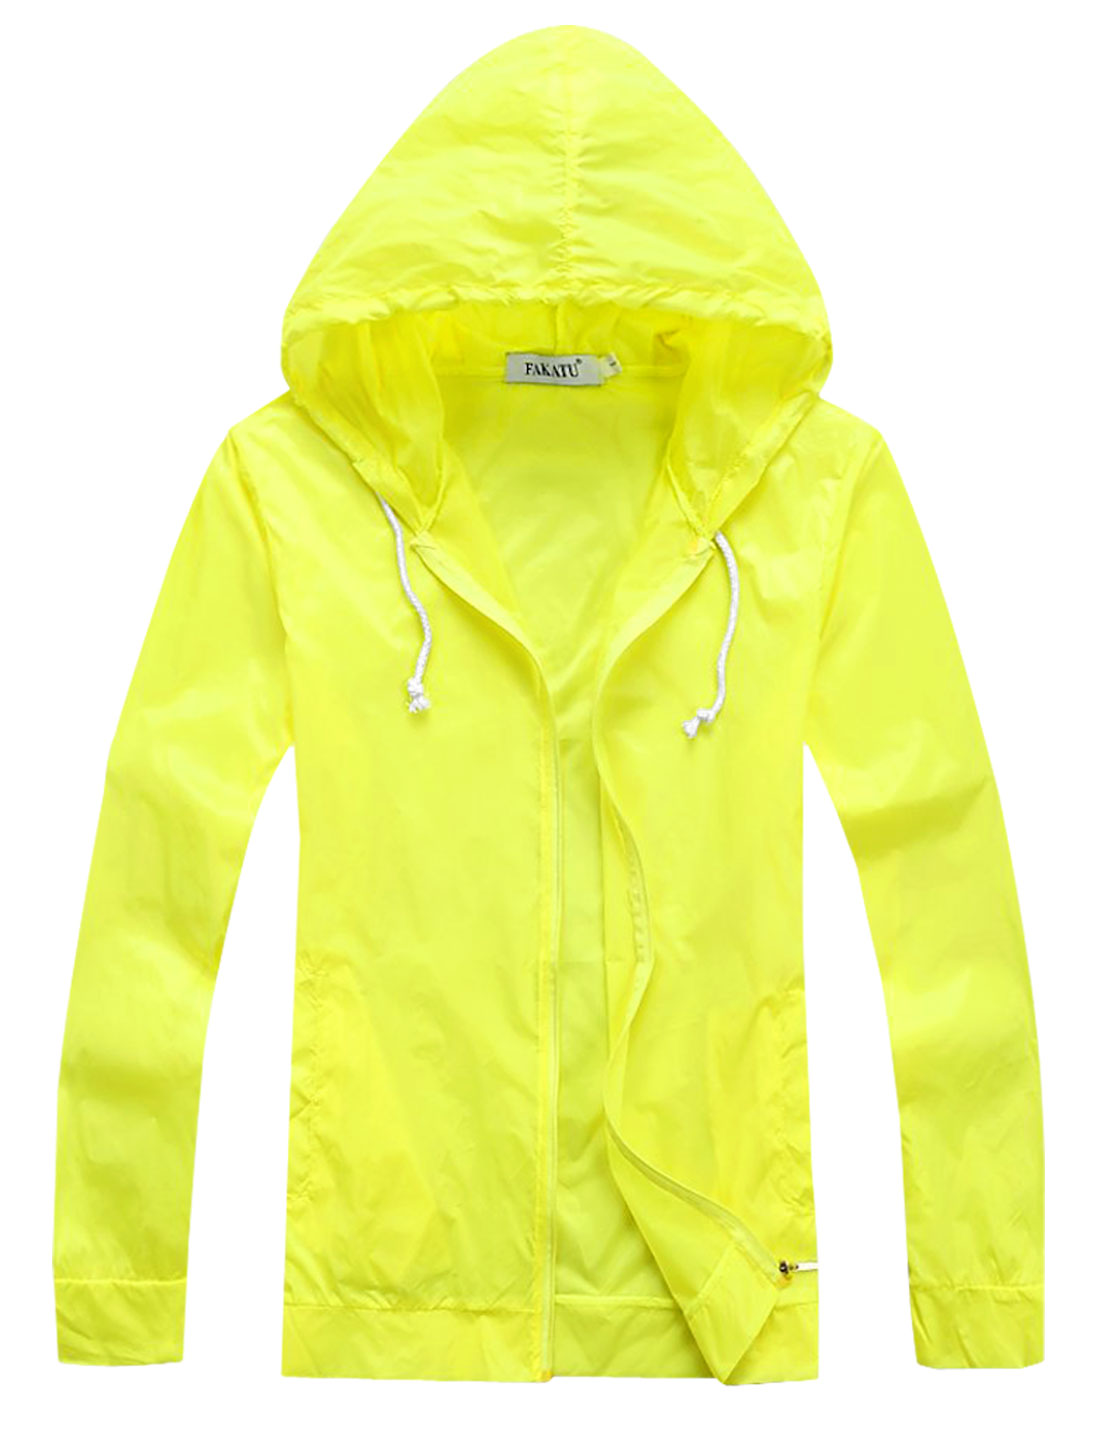 Man's Zipper Closure Sun-proof Long Sleeve Hoodie Jacket Yellow M